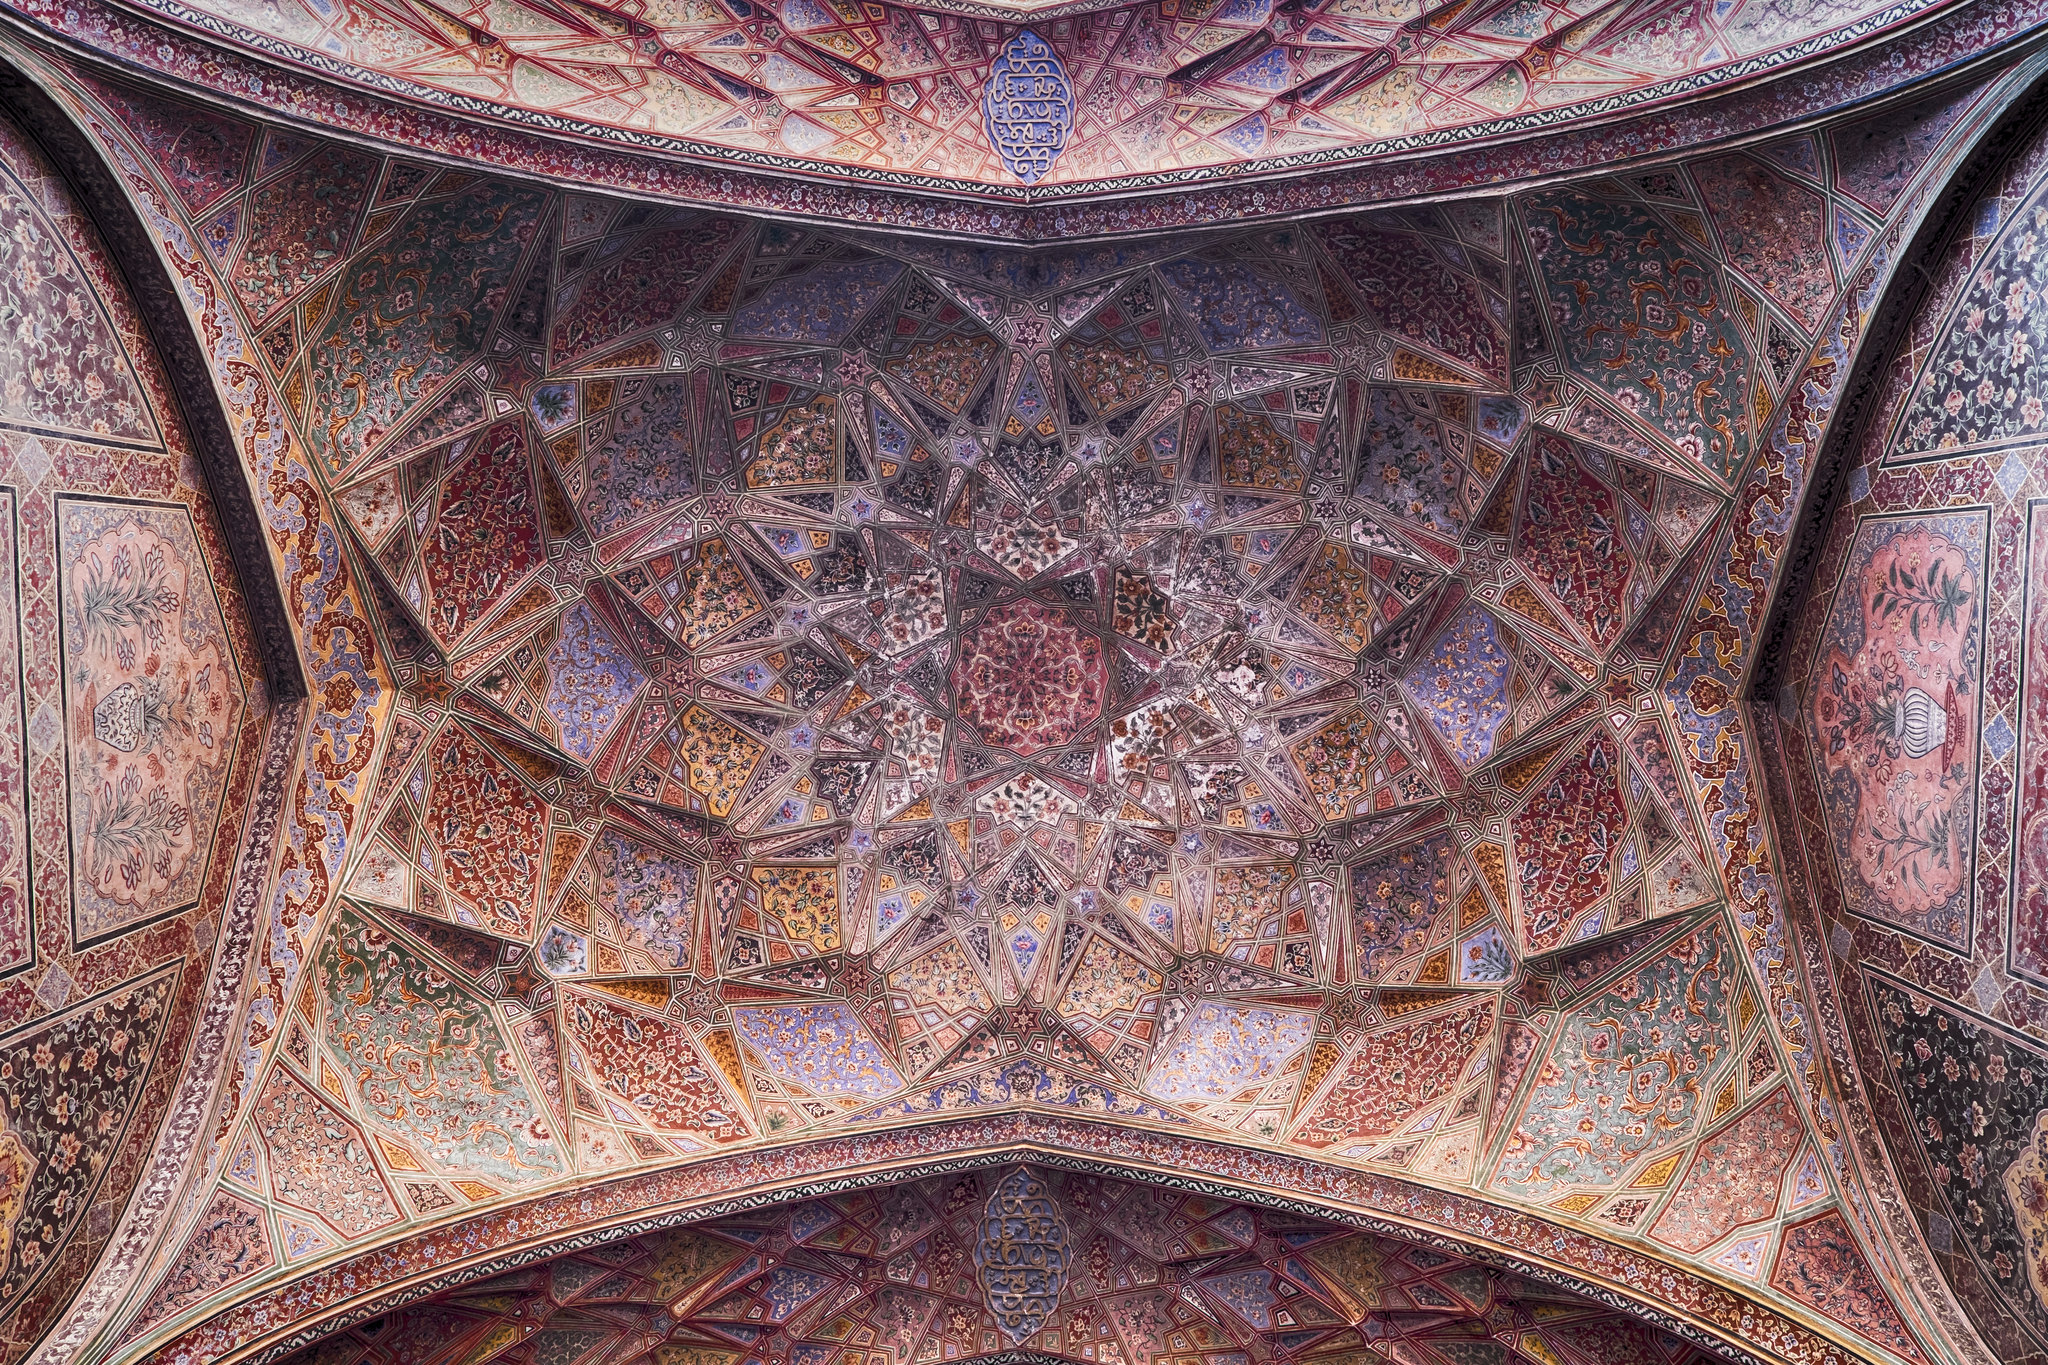 Underneath the dome of the Wazir Khan Mosque in Lahore, Pakistan [2048x1365]